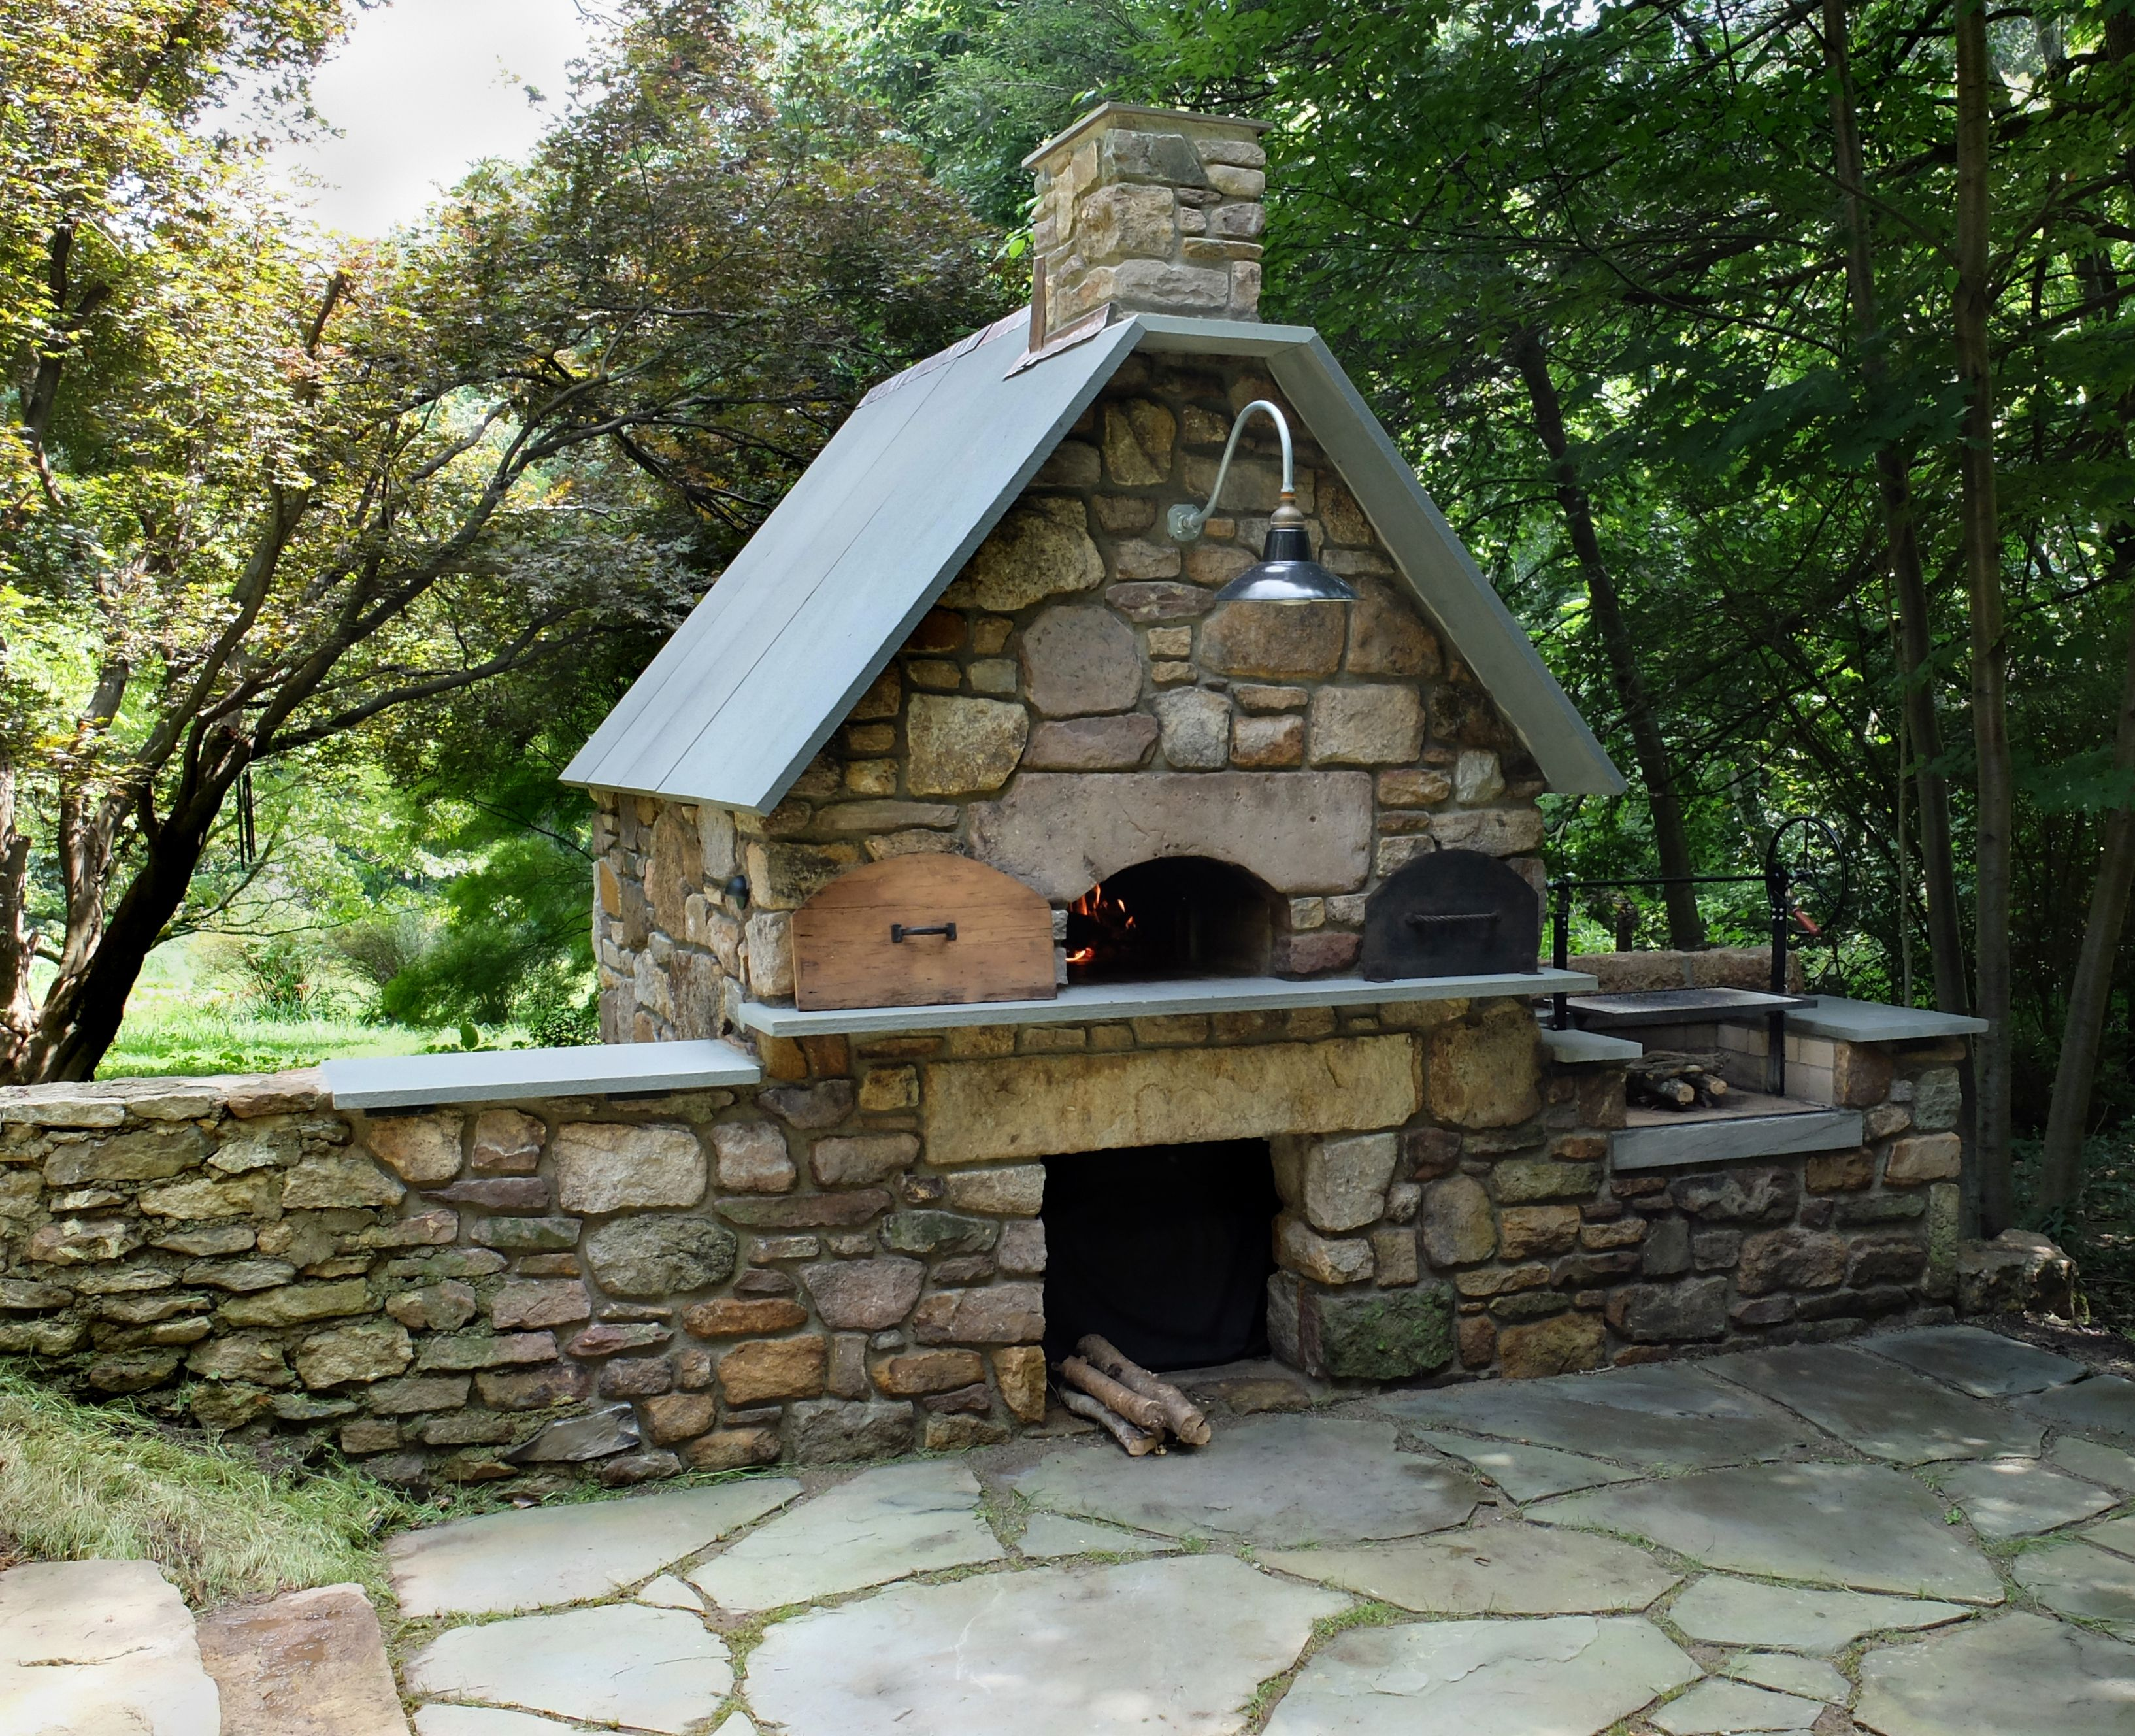 Outdoor woodfired pizza oven and barbecue designed and built by